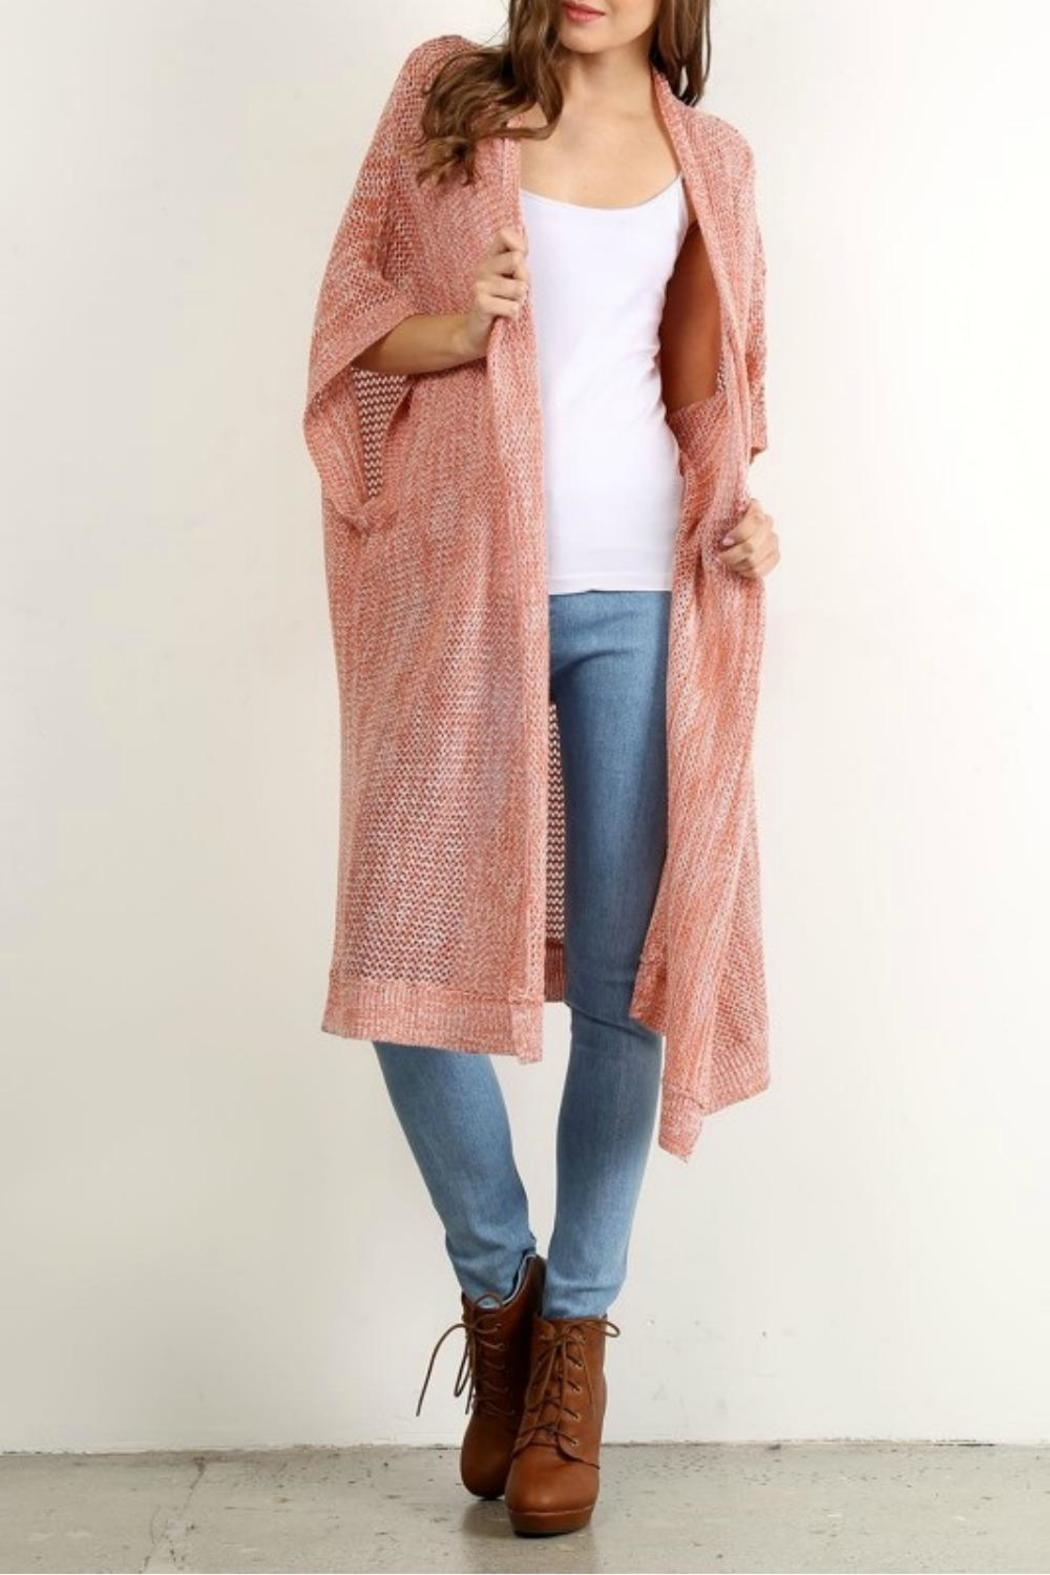 Hem Amp Thread Long Blush Cardigan From St George By The